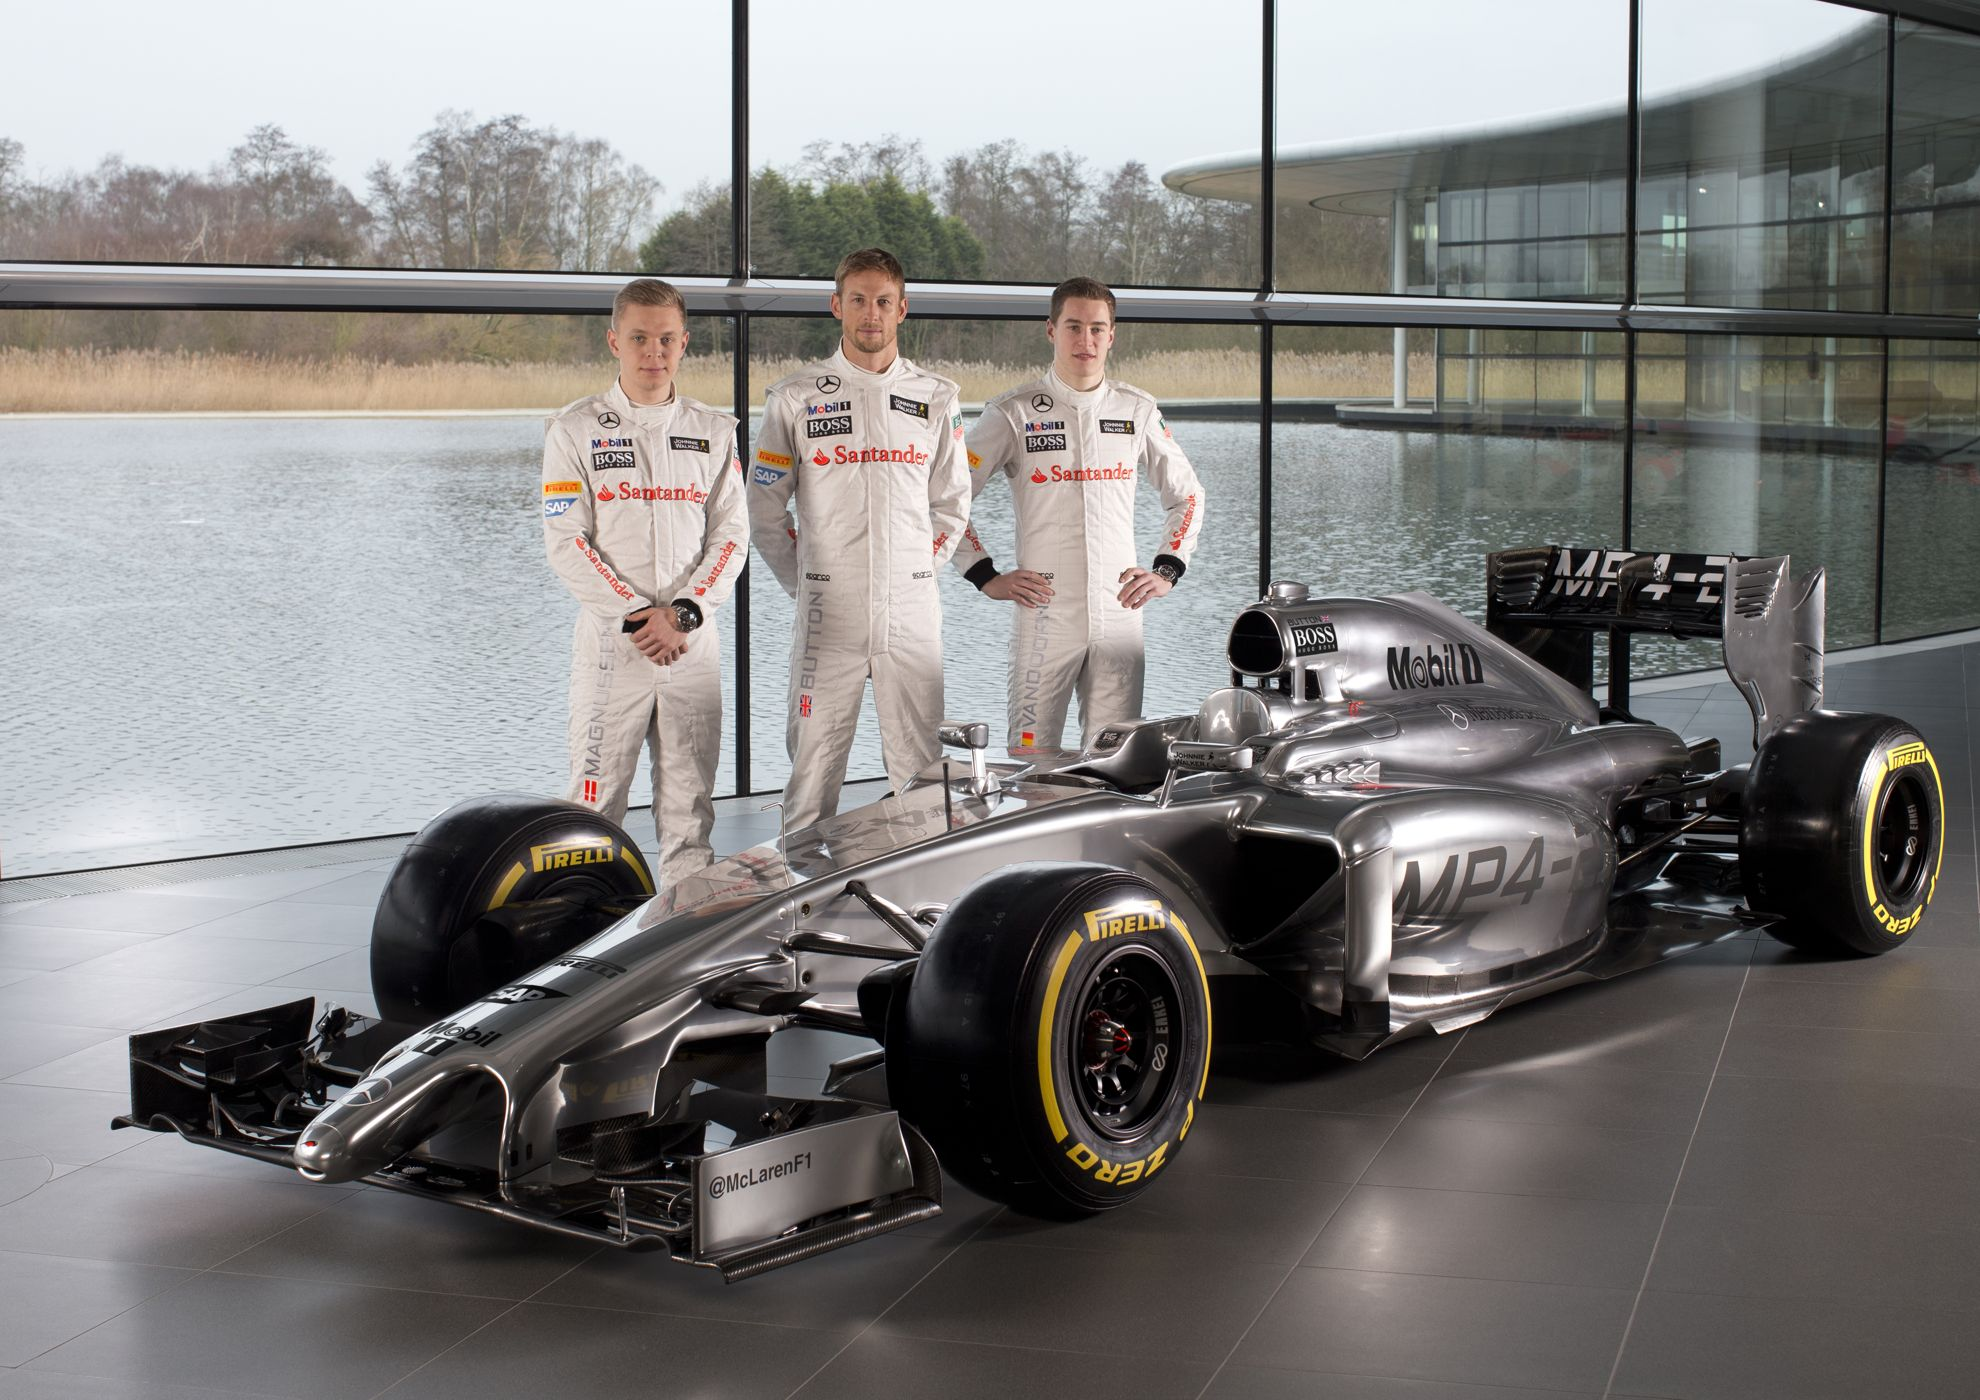 mclaren formula one reveals new racing car the mp429